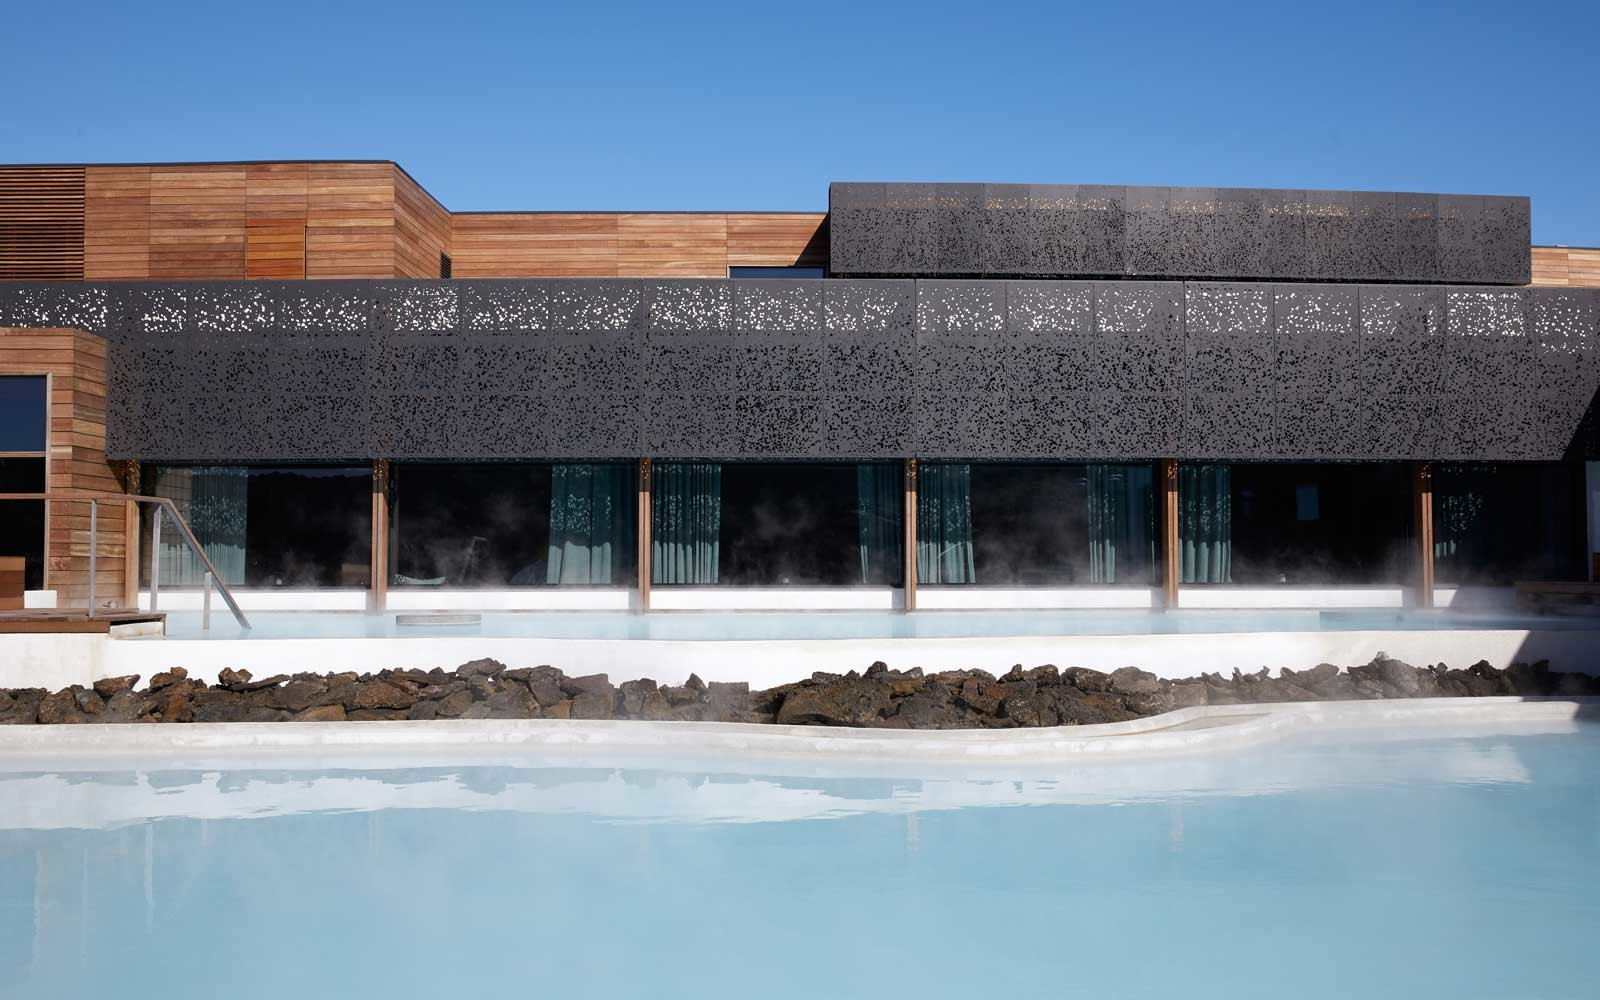 View of the Restreat at Blue Lagoon hotel on Iceland's Blue Lagoon